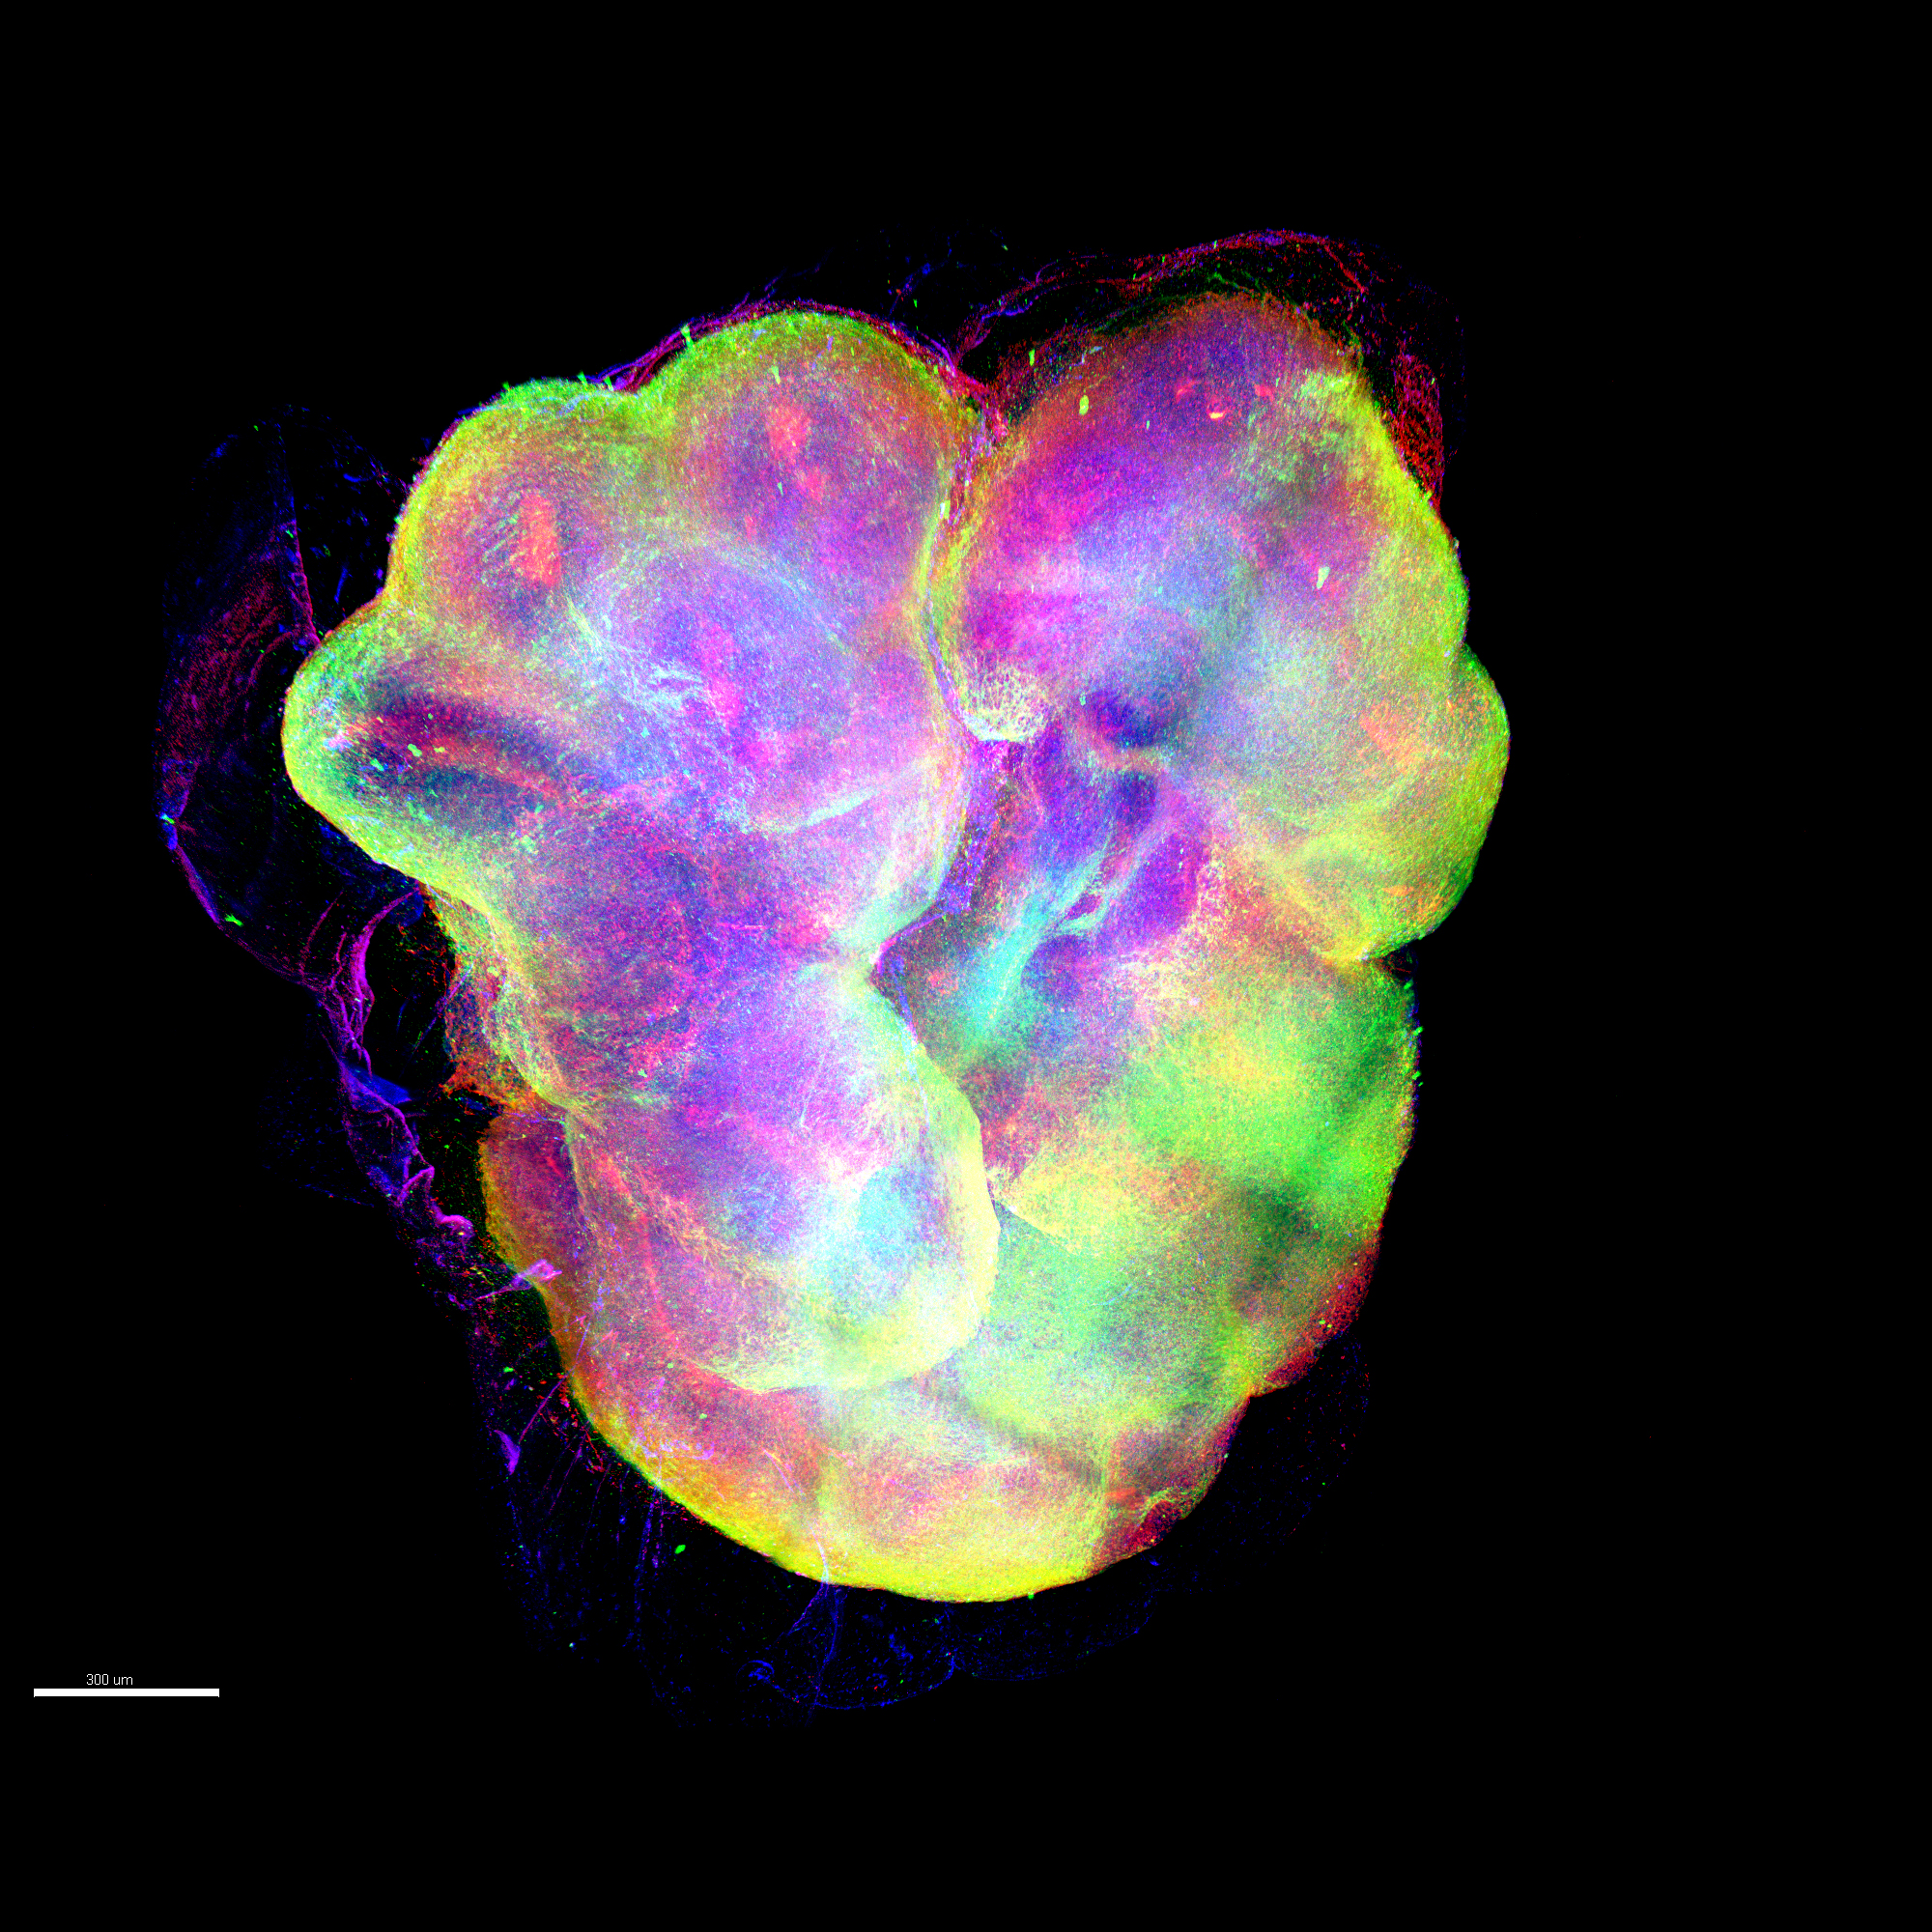 An organoid appears as a vaguely heart-shaped blob with many colors